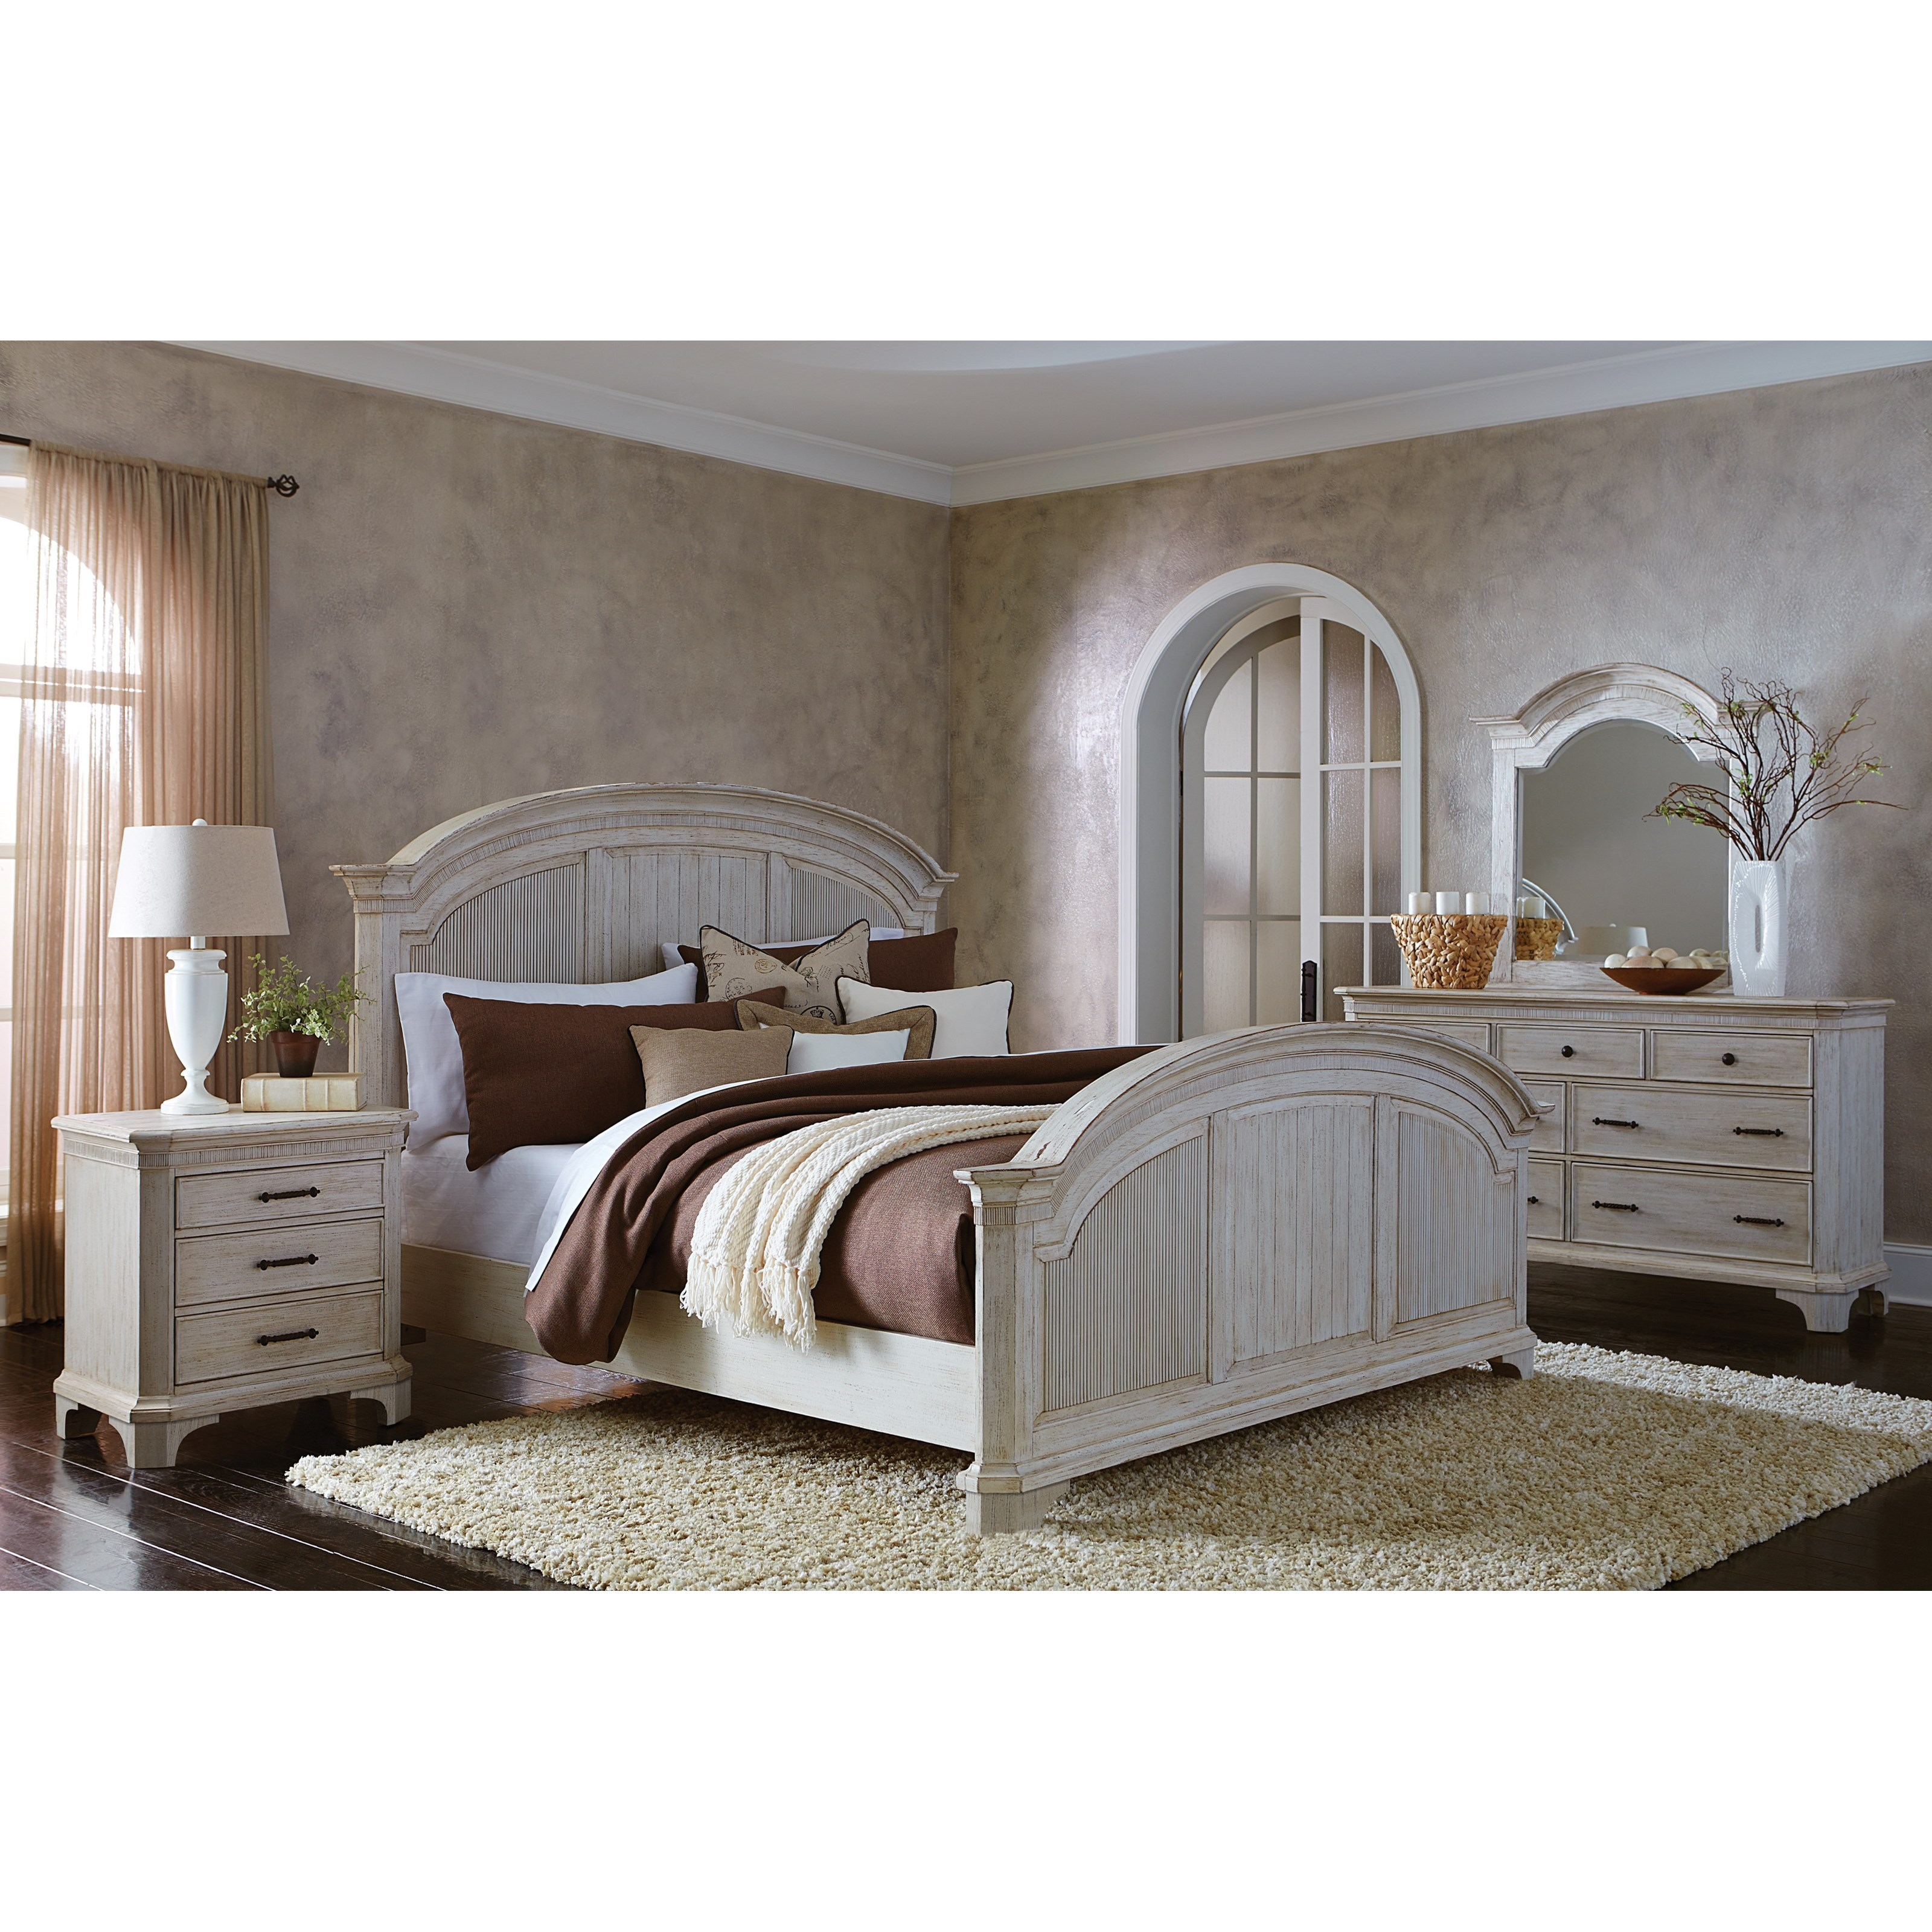 Riverside Furniture Aberdeen Queen Bedroom Group 2 - Item Number: 212 Q Bedroom Group 2